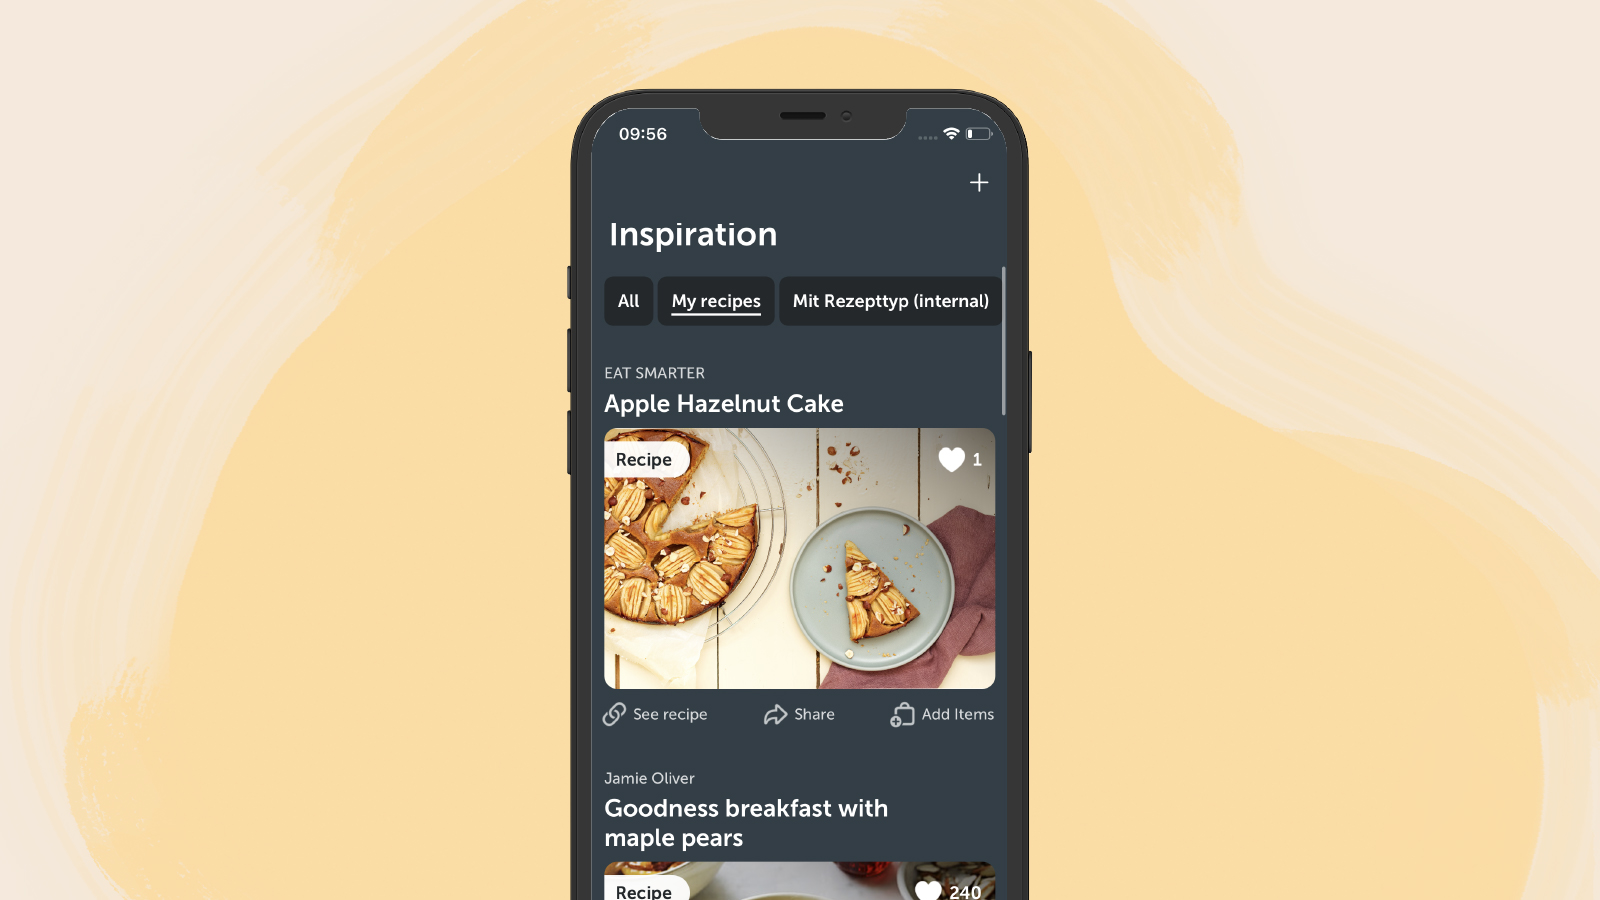 You will find the imported recipe in your recipe collection in Bring!